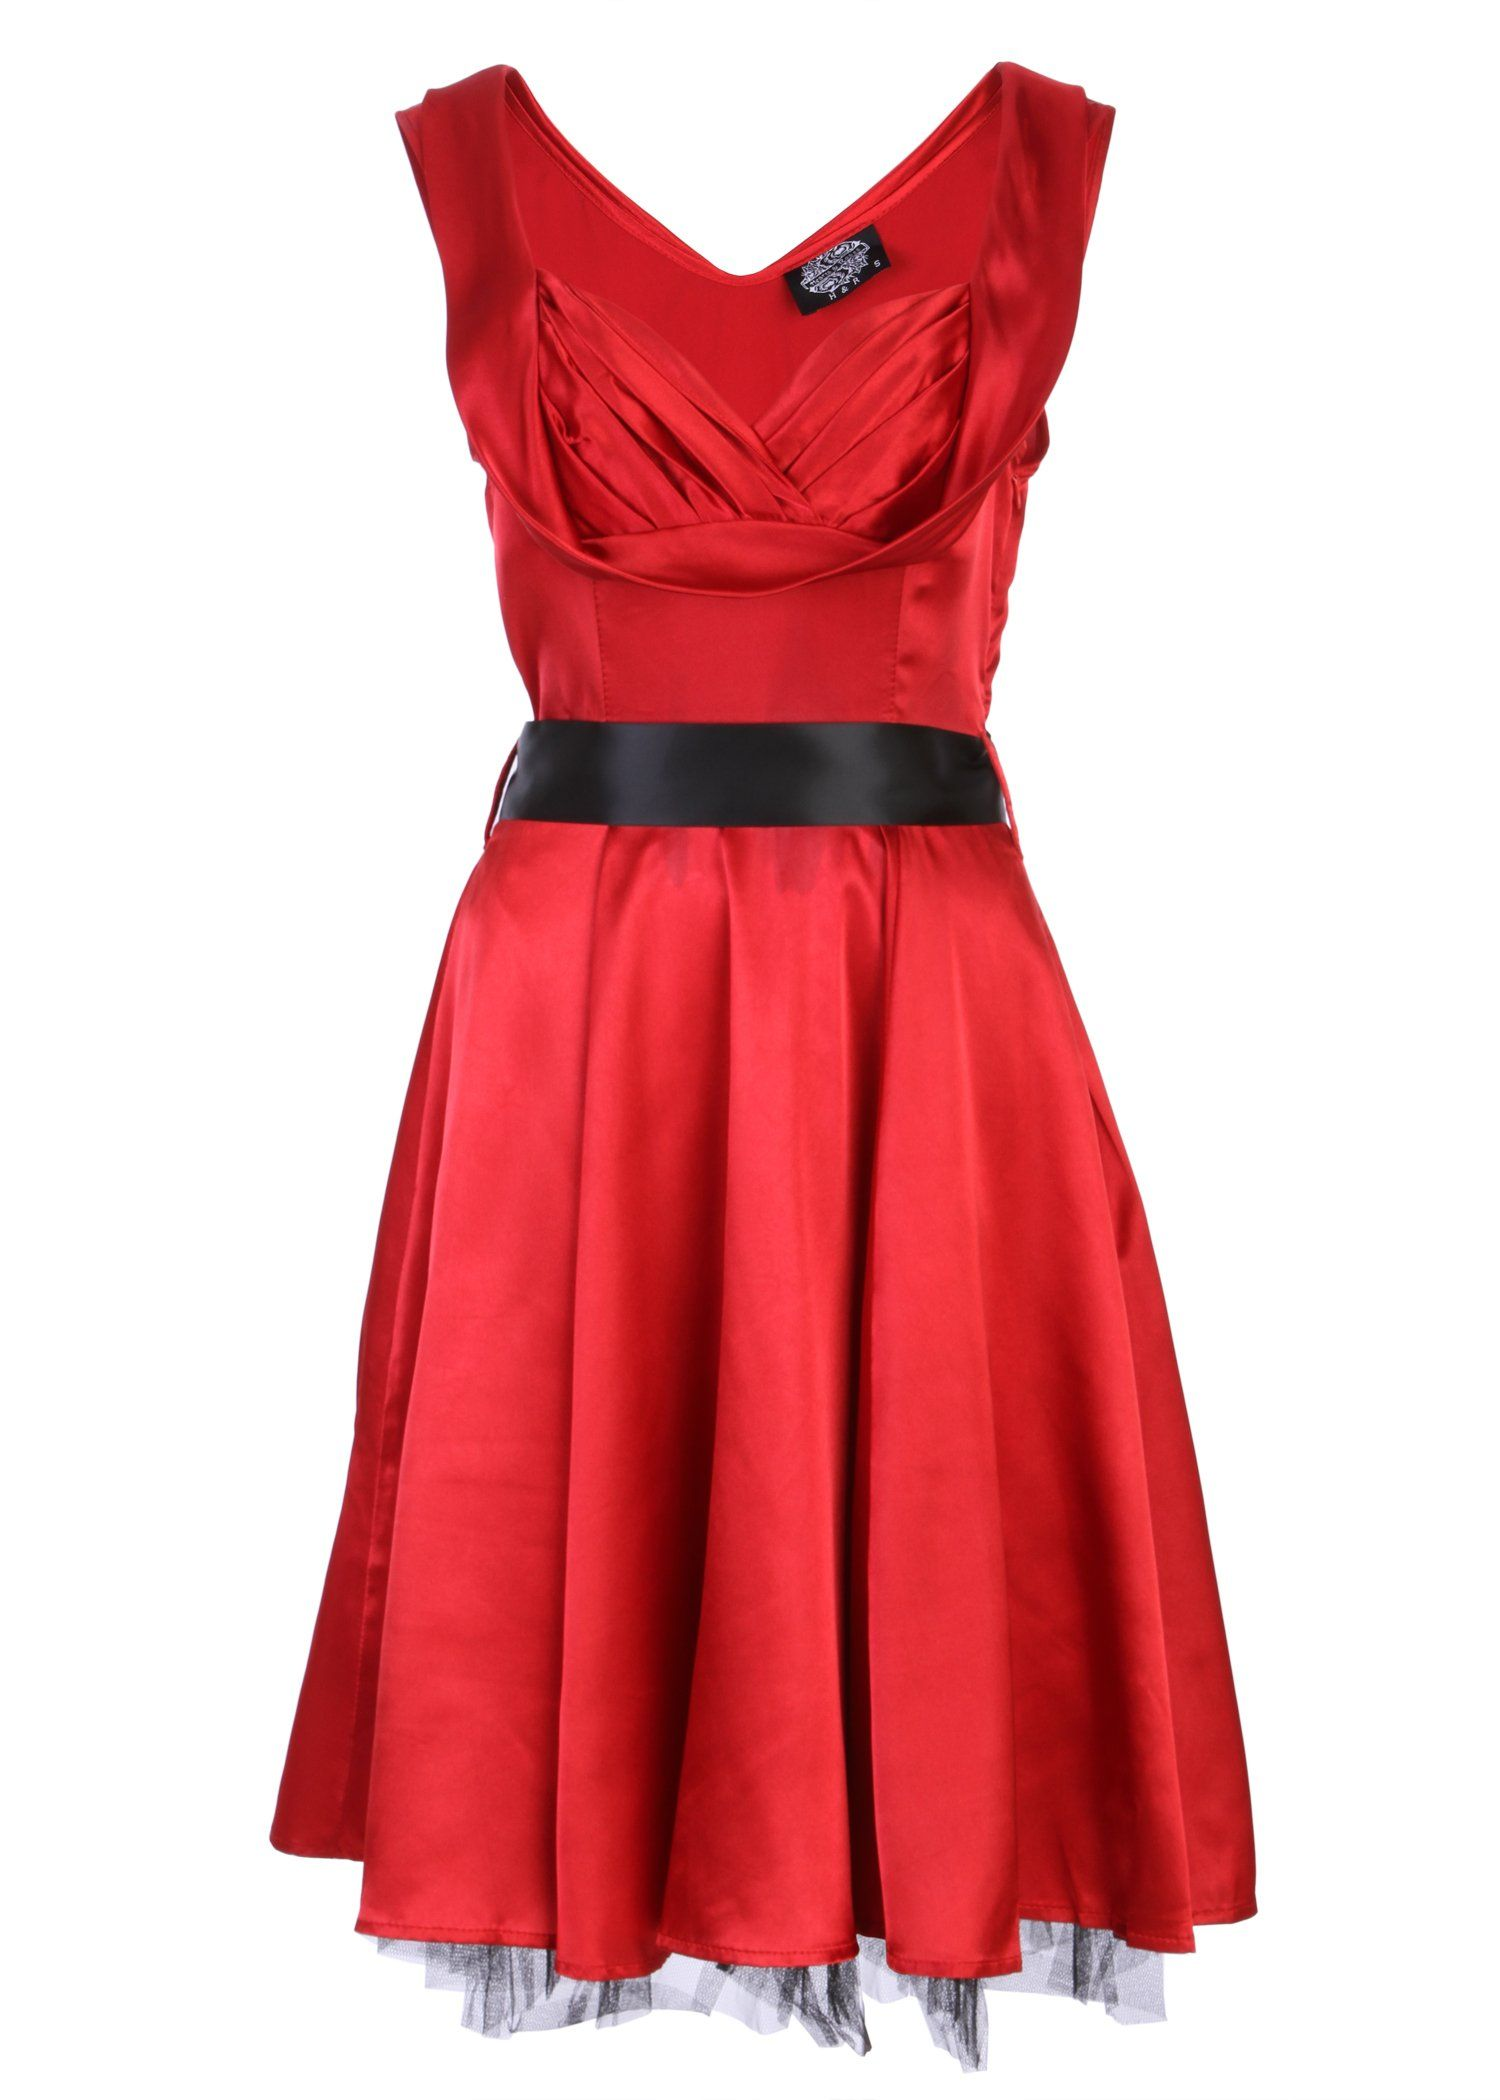 Glamorous Red 1950's Dress Vintage Style Sweetheart Full Circle Party Cocktail Prom - Size X-Small